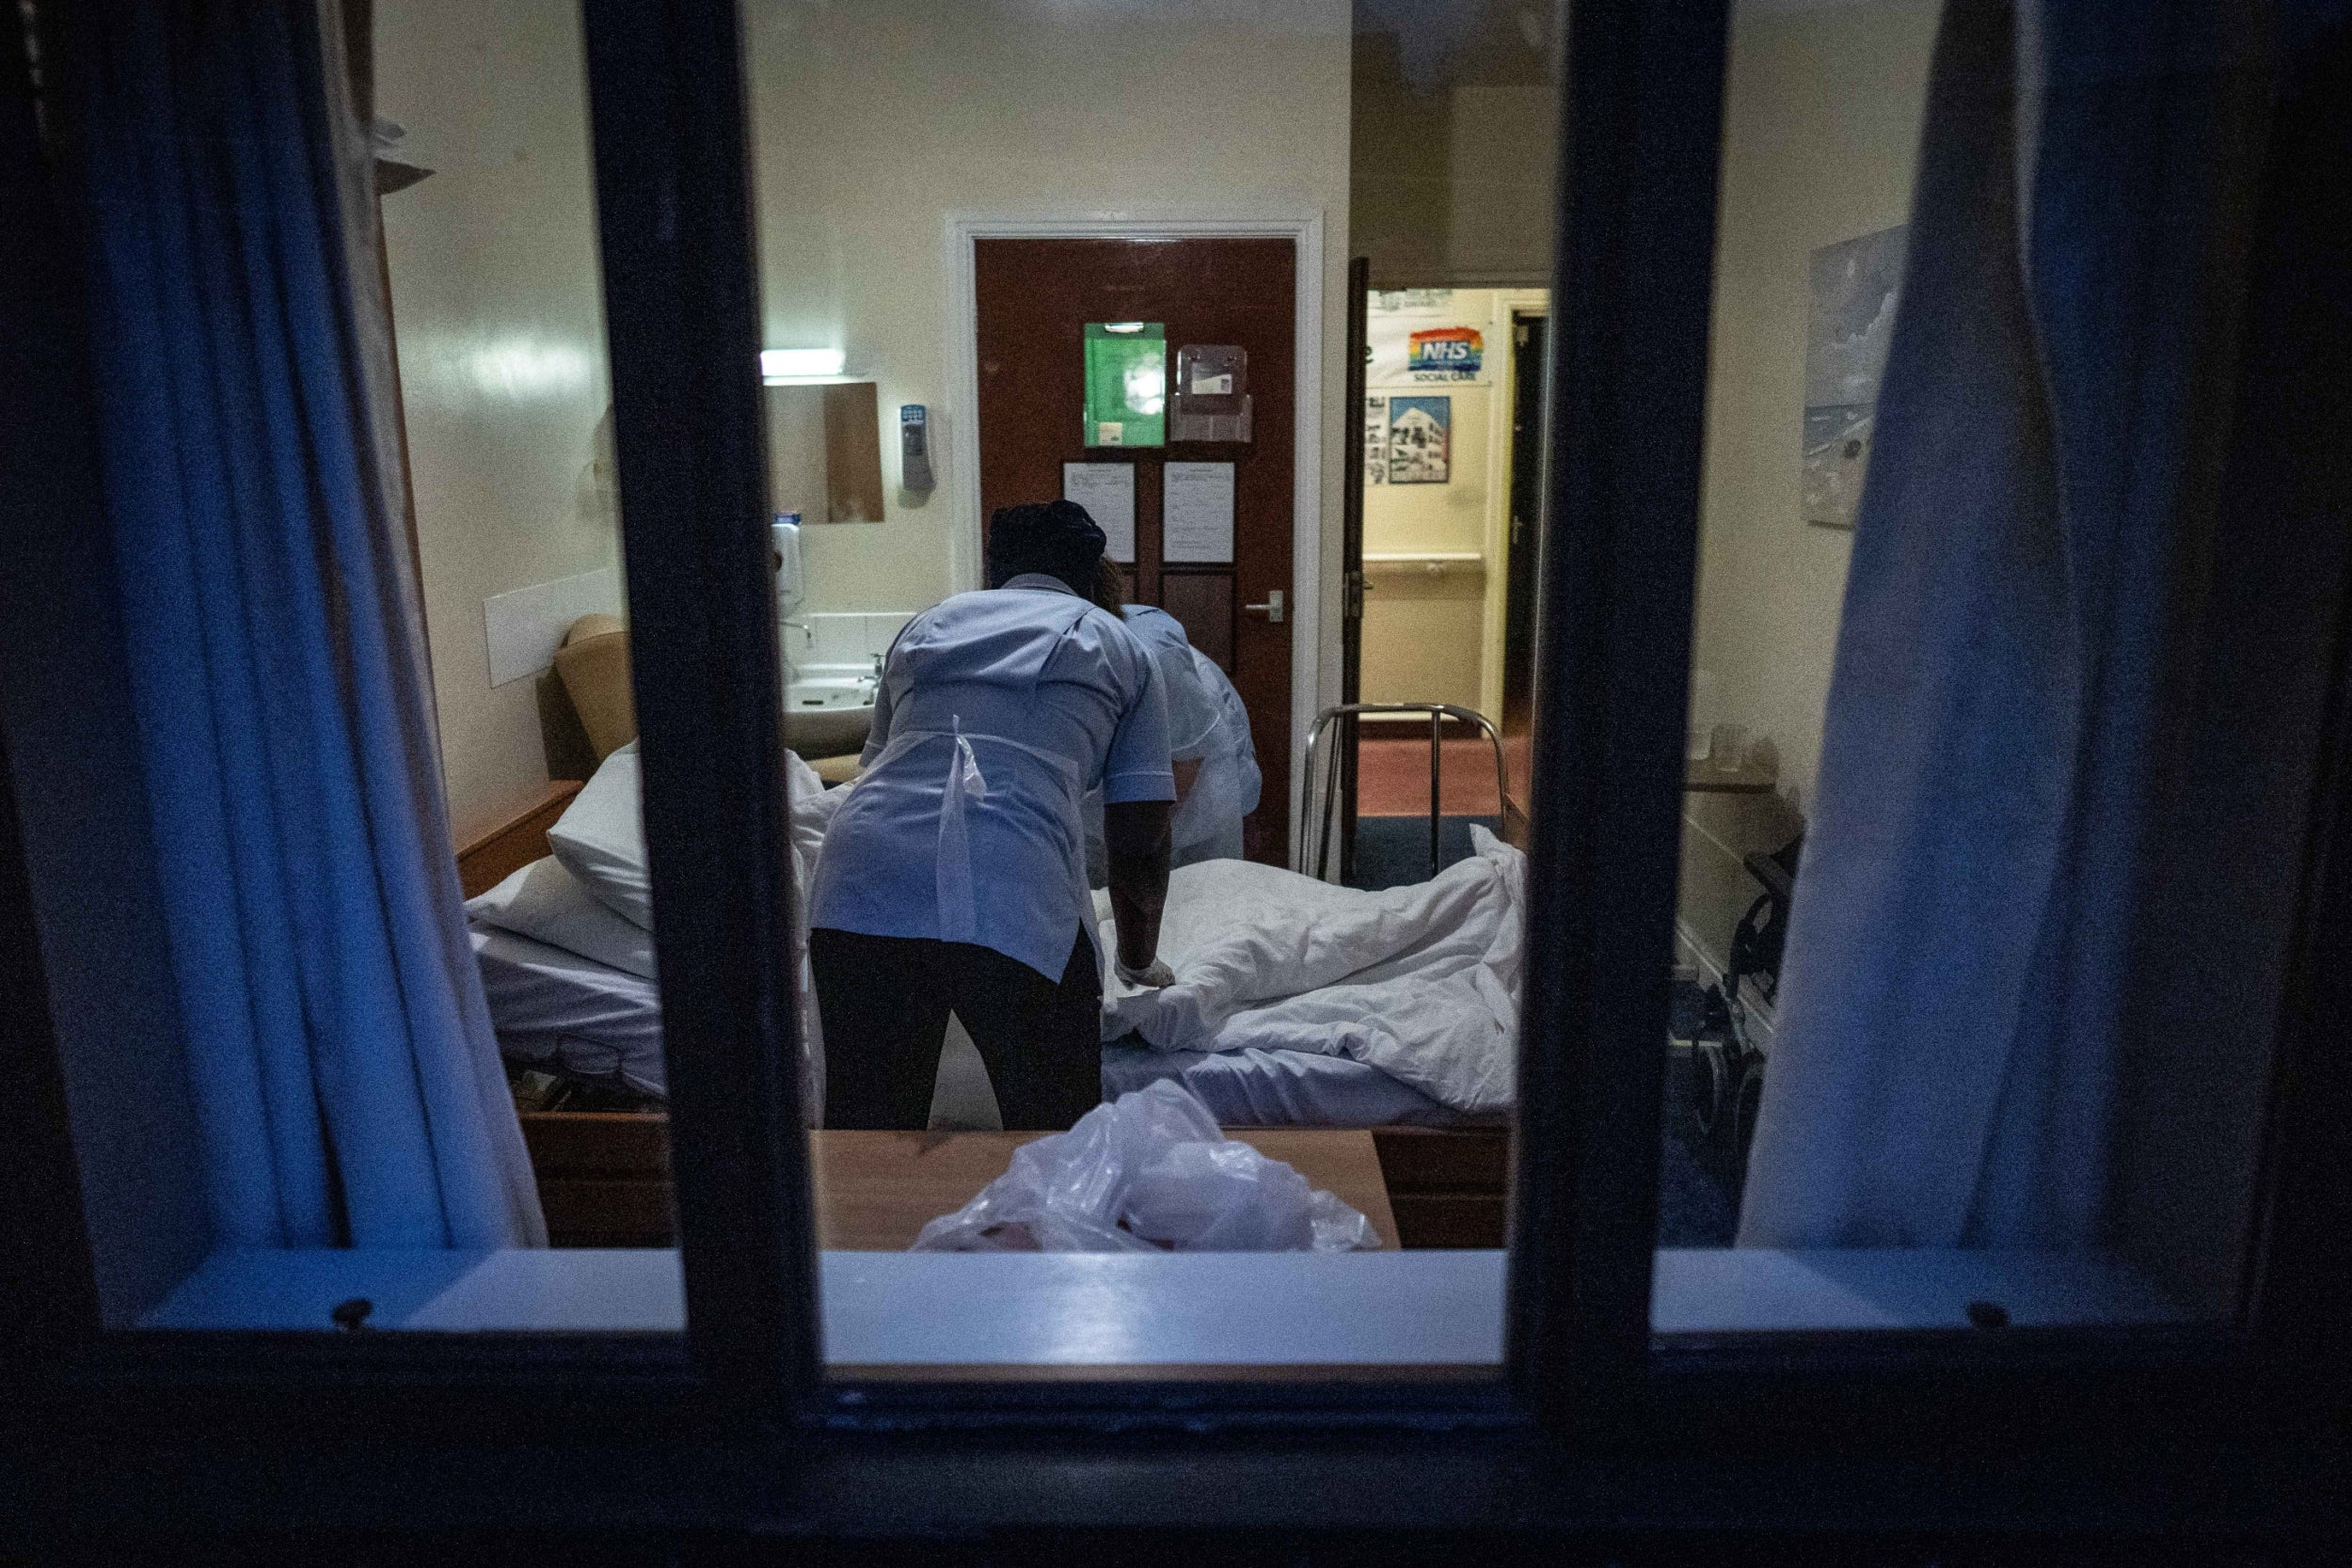 Coronavirus: Government's £600m infection fund for care homes can't be used to buy protective clothing